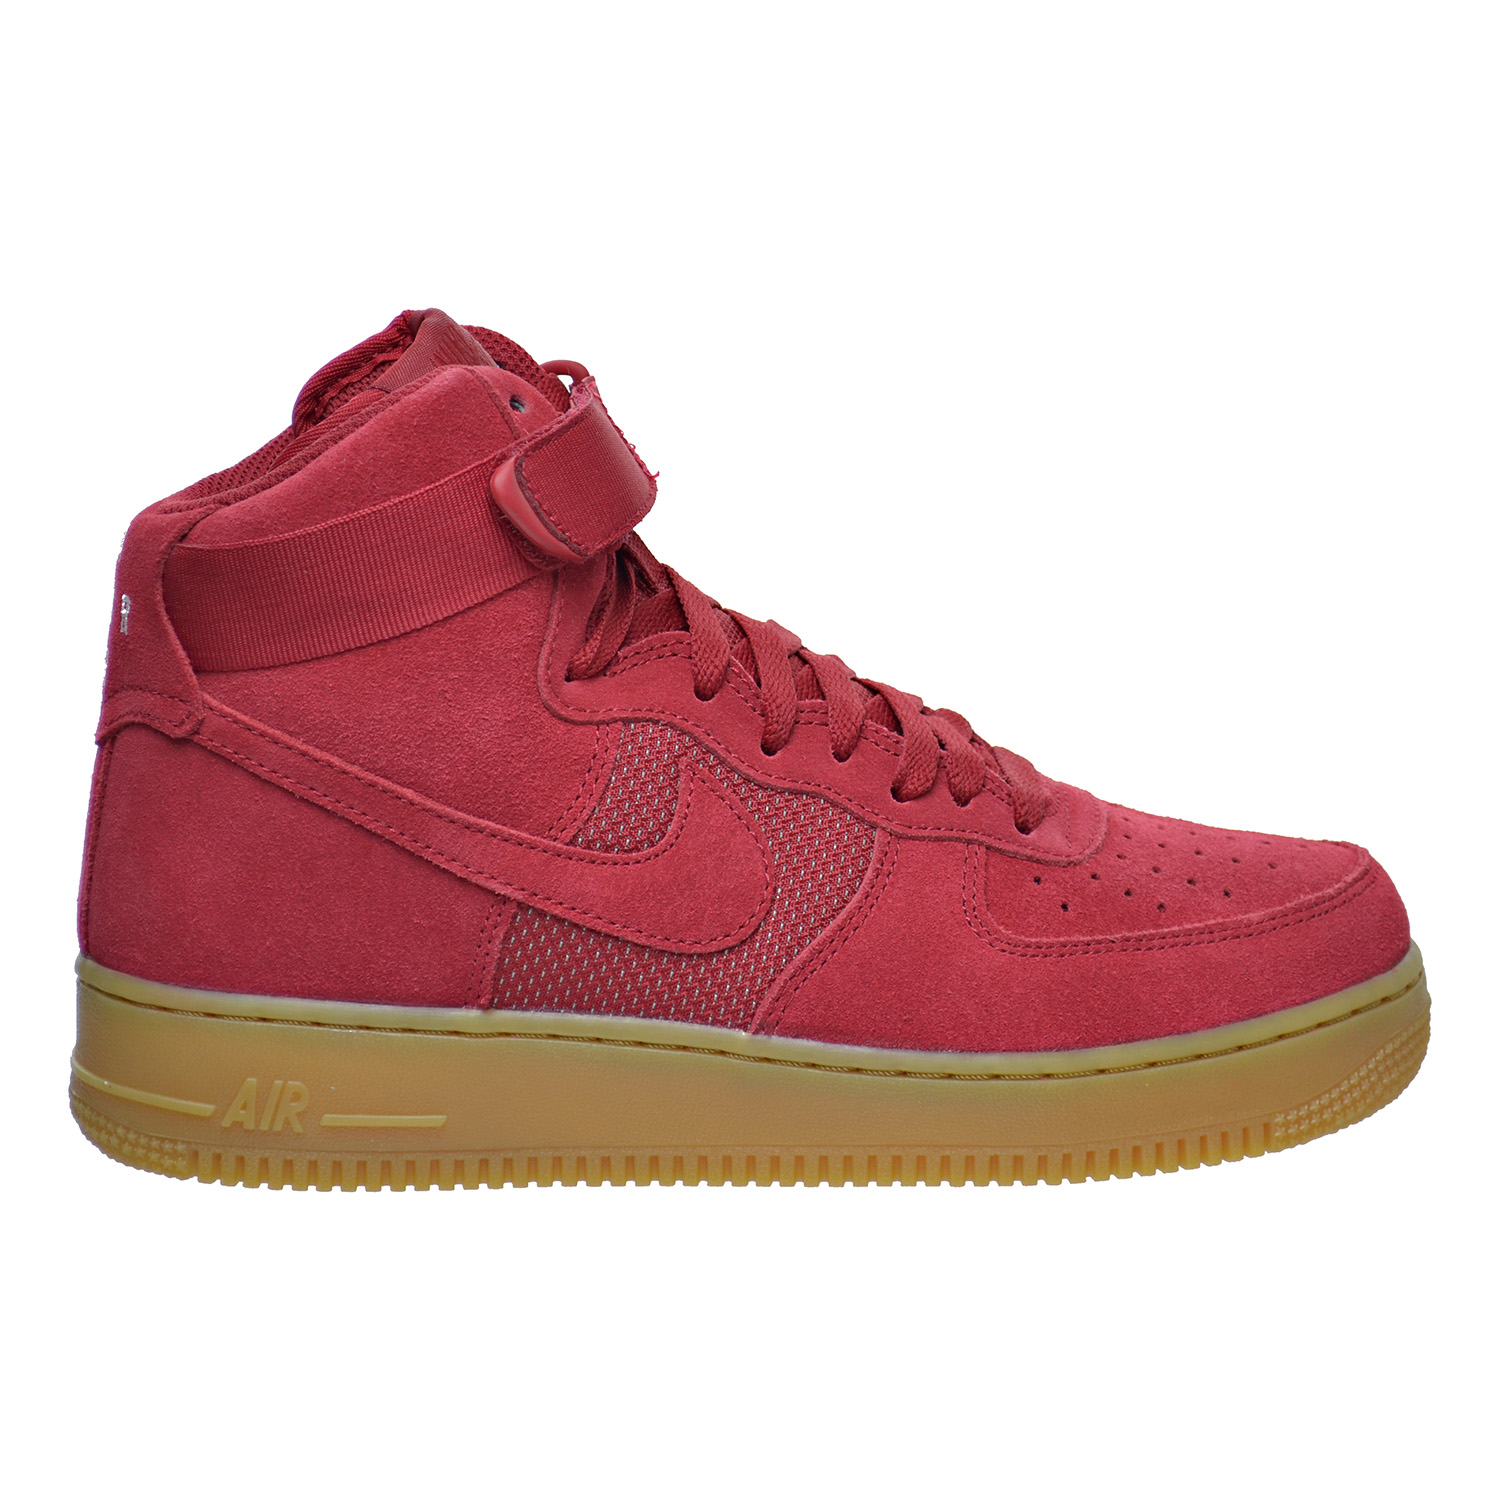 Nike Air Force 1 High '07 LV8 Men's Basketball Shoes Gym ...